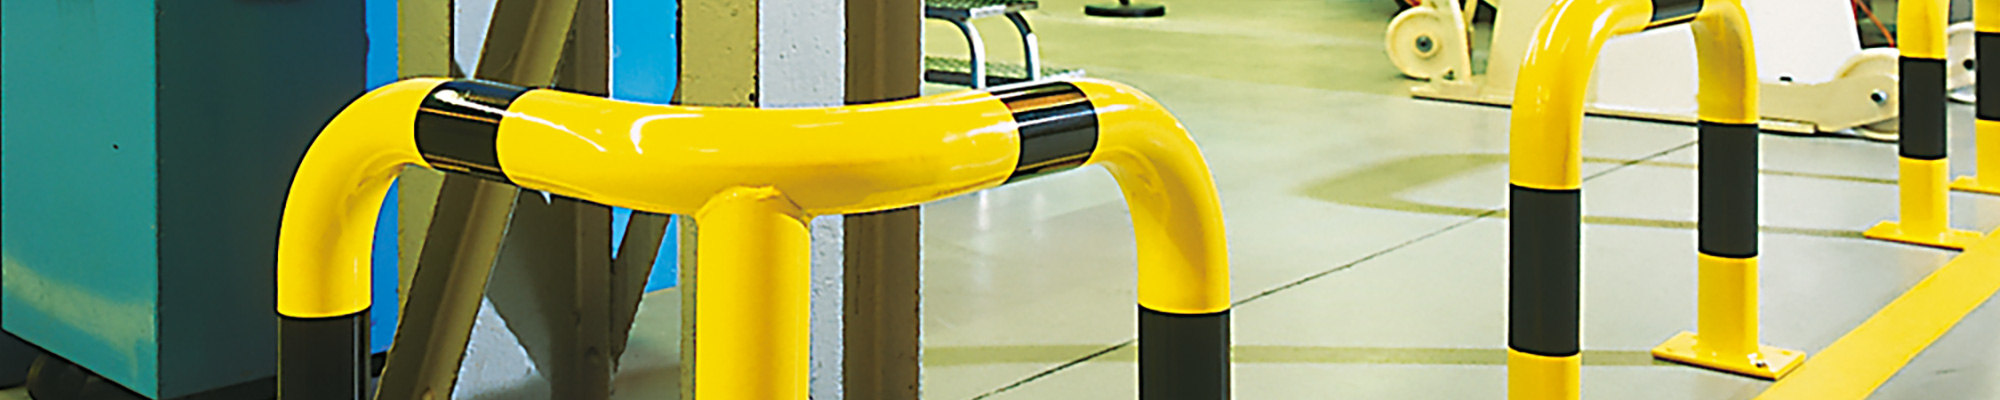 heavy duty bollards von MORAVIA